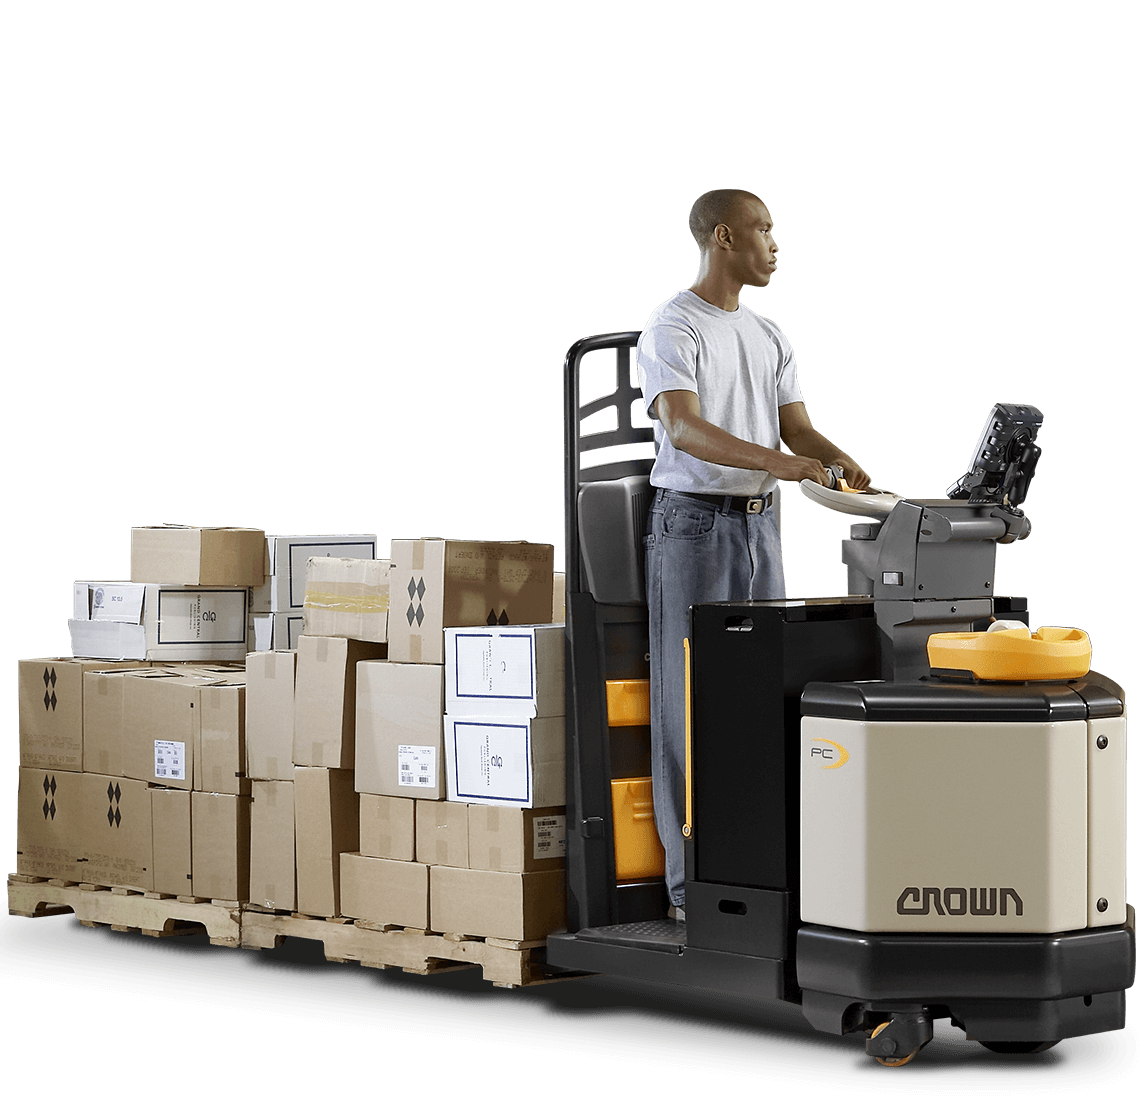 Operator moves a load using Crown's PC series center control pallet truck